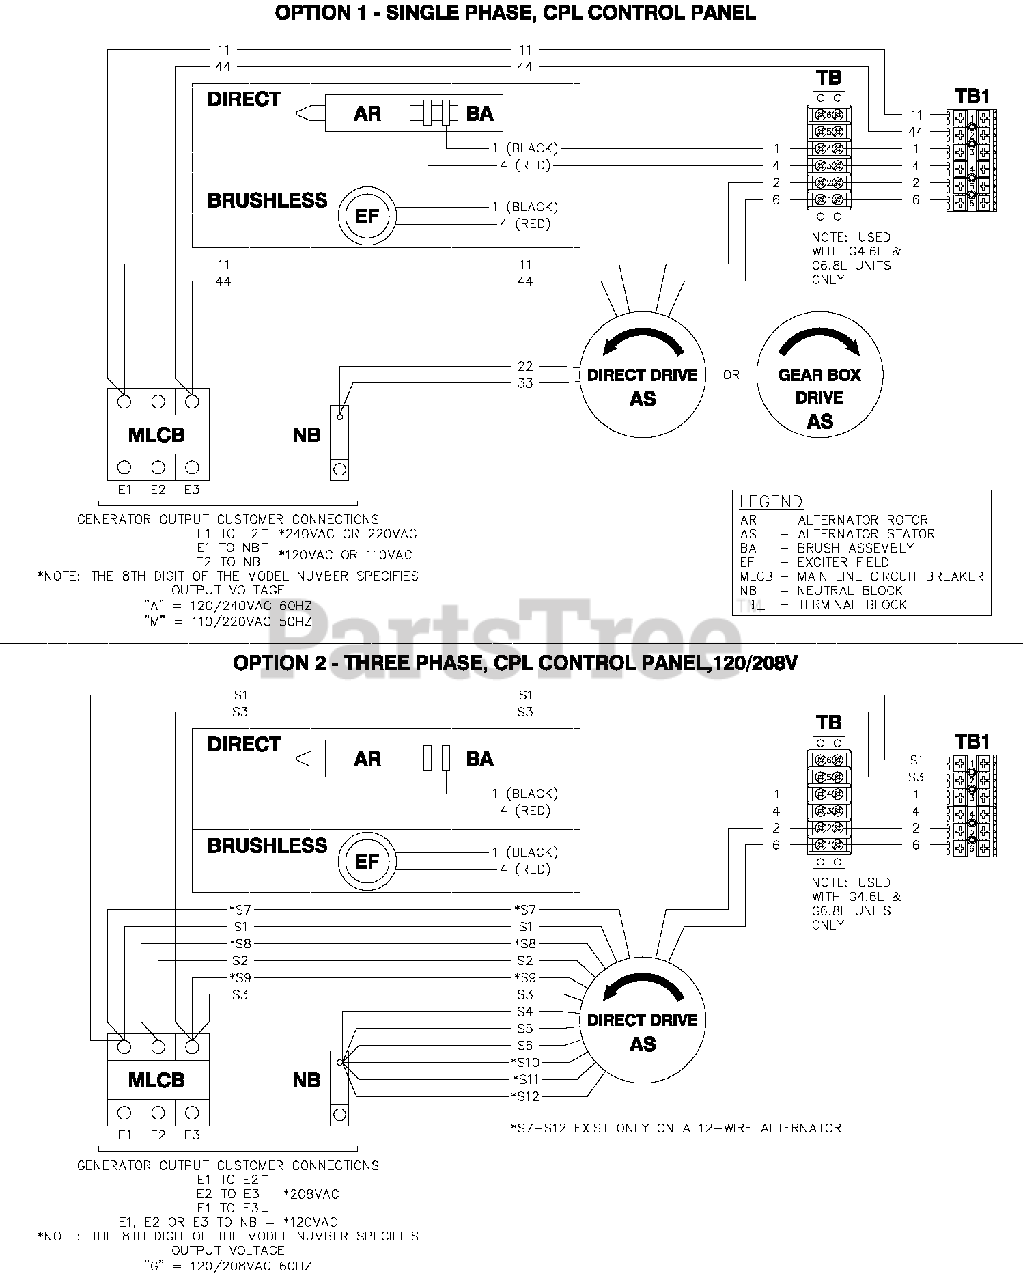 Generac QT03015GNSX - Generac 30kW Home Standby Generator (SN: 6999978 -  9591865) (2015) Wiring Diagram (0H6342) Parts Lookup with Diagrams |  PartsTree | Generac 30 Kw Wiring Diagram |  | PartsTree